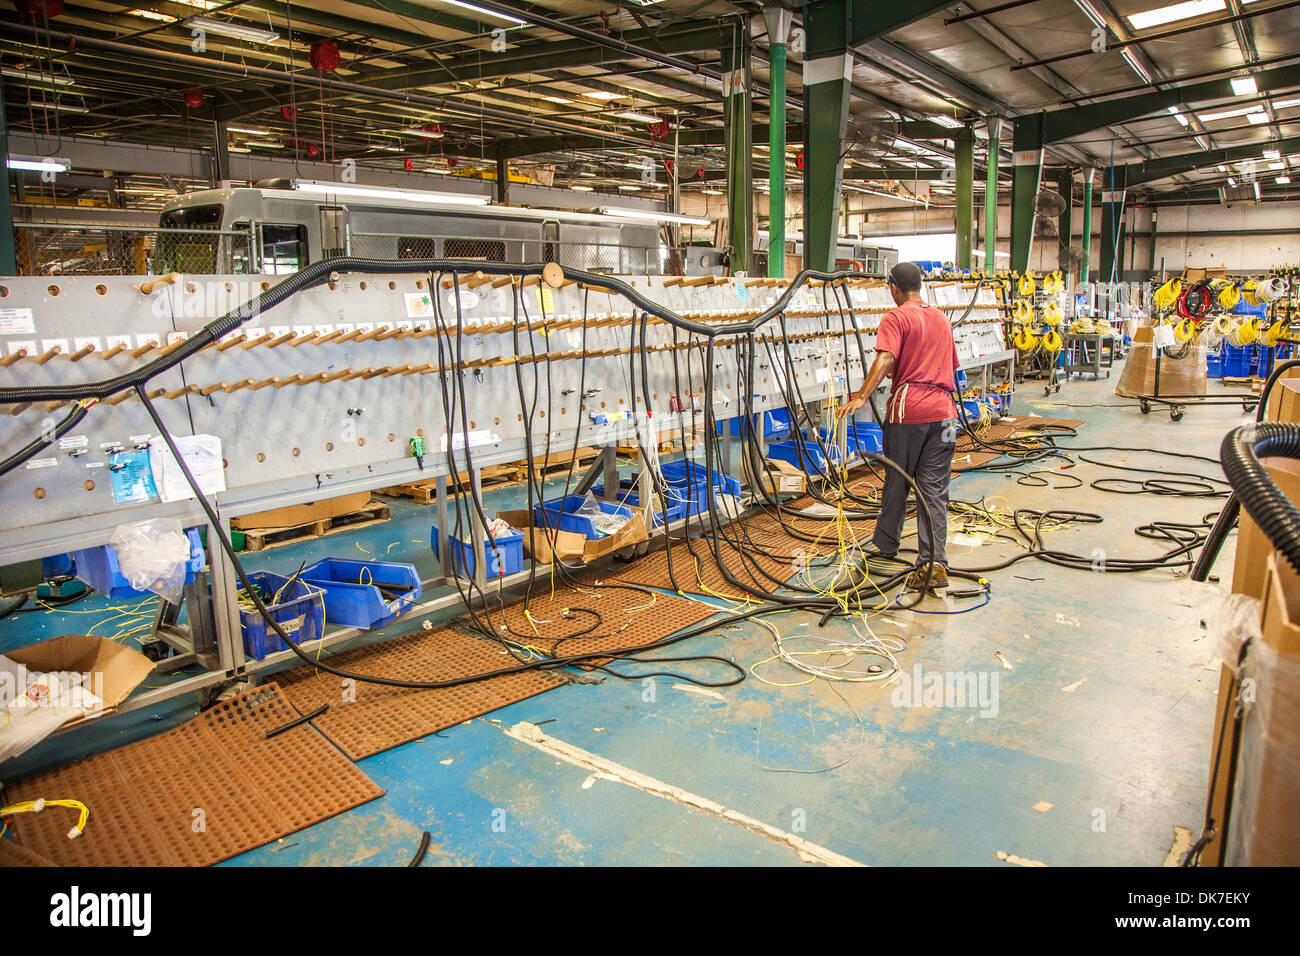 Wire Harness Factory High Resolution Stock Photography and Images - AlamyAlamy